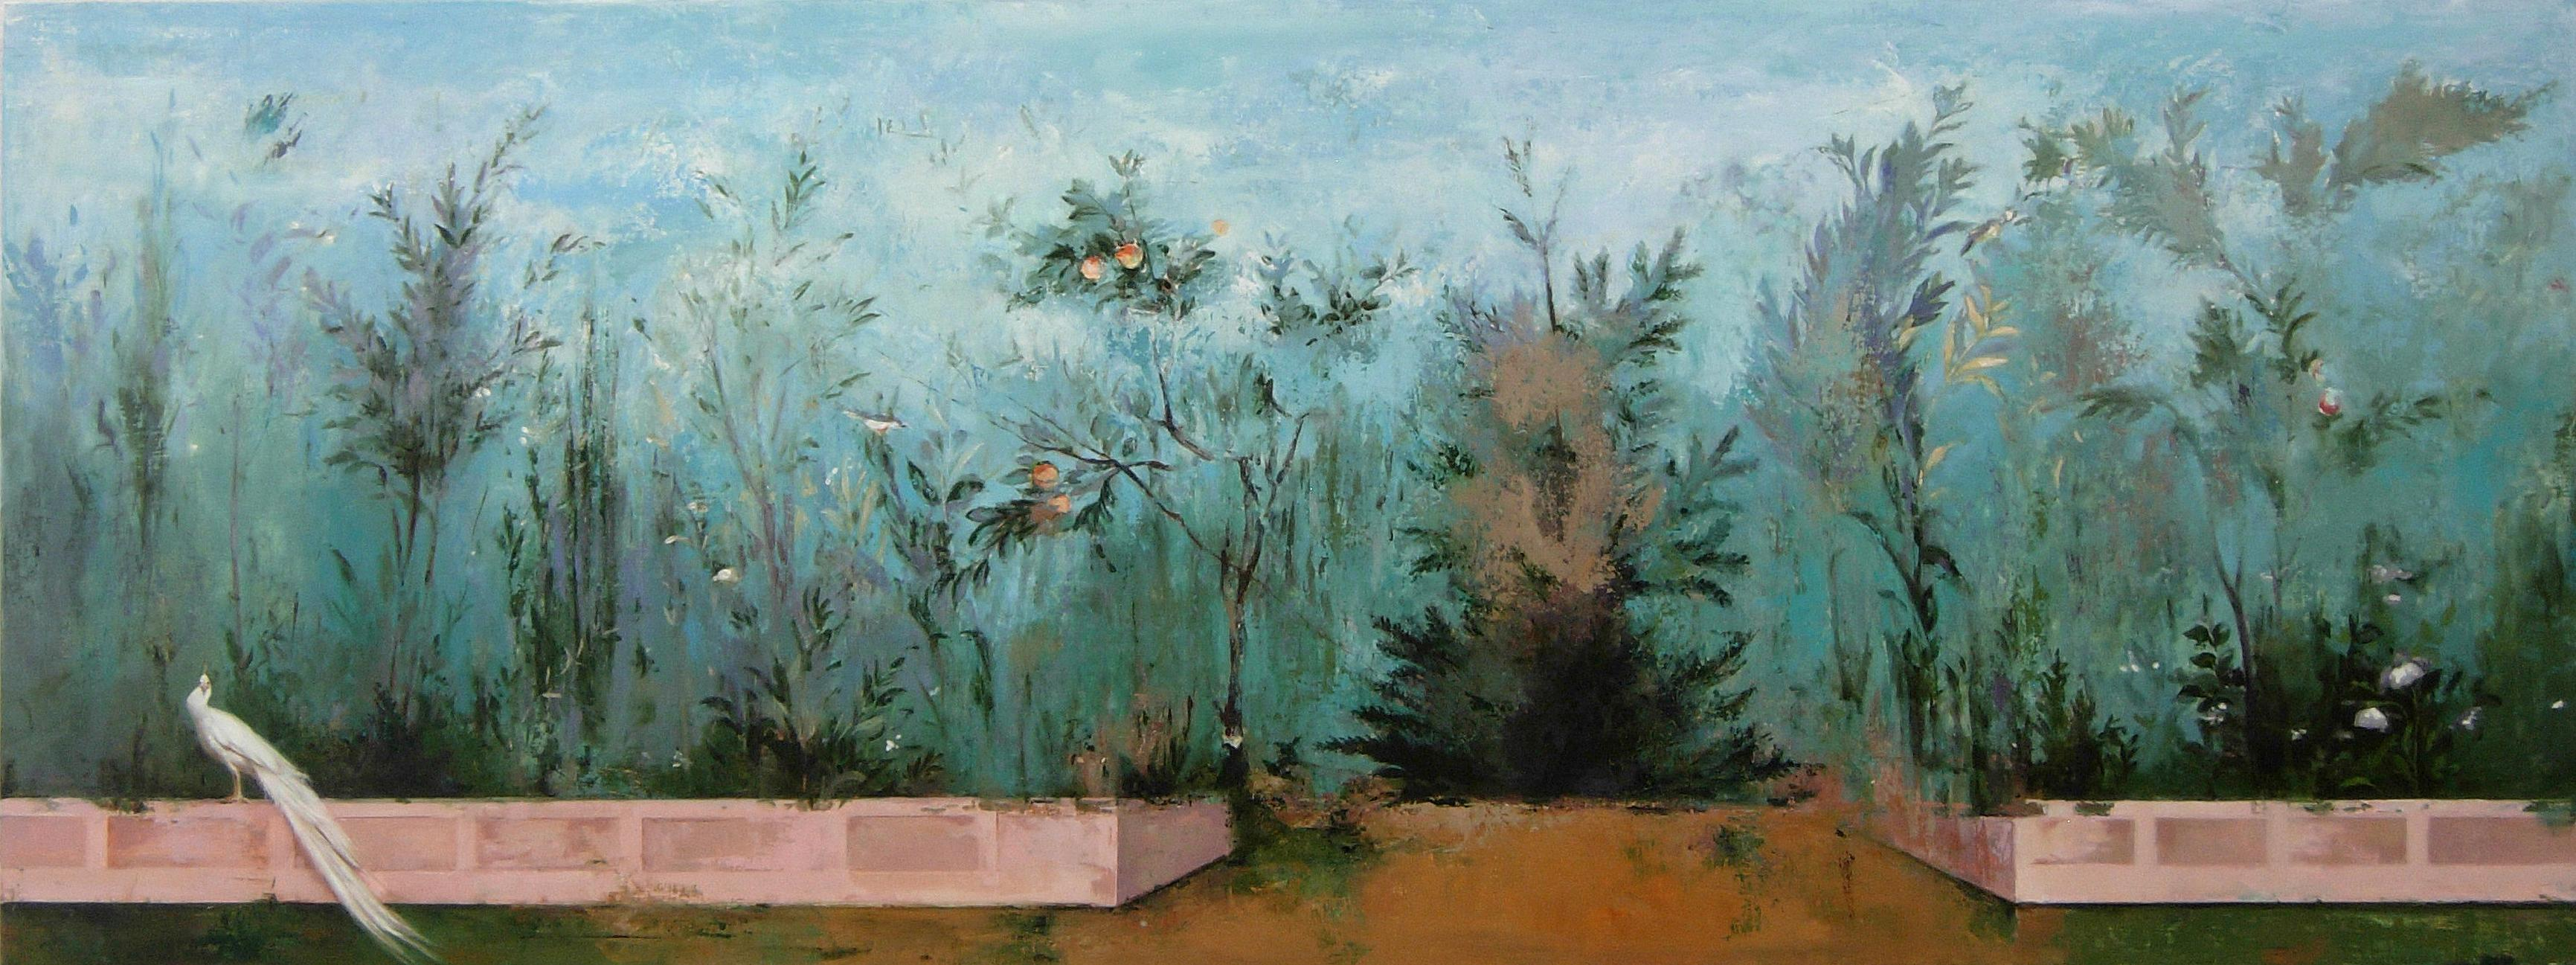 Il Muro, Large Scale Gardenscape Inspired by Ancient Roman Frescos, Oil on Panel